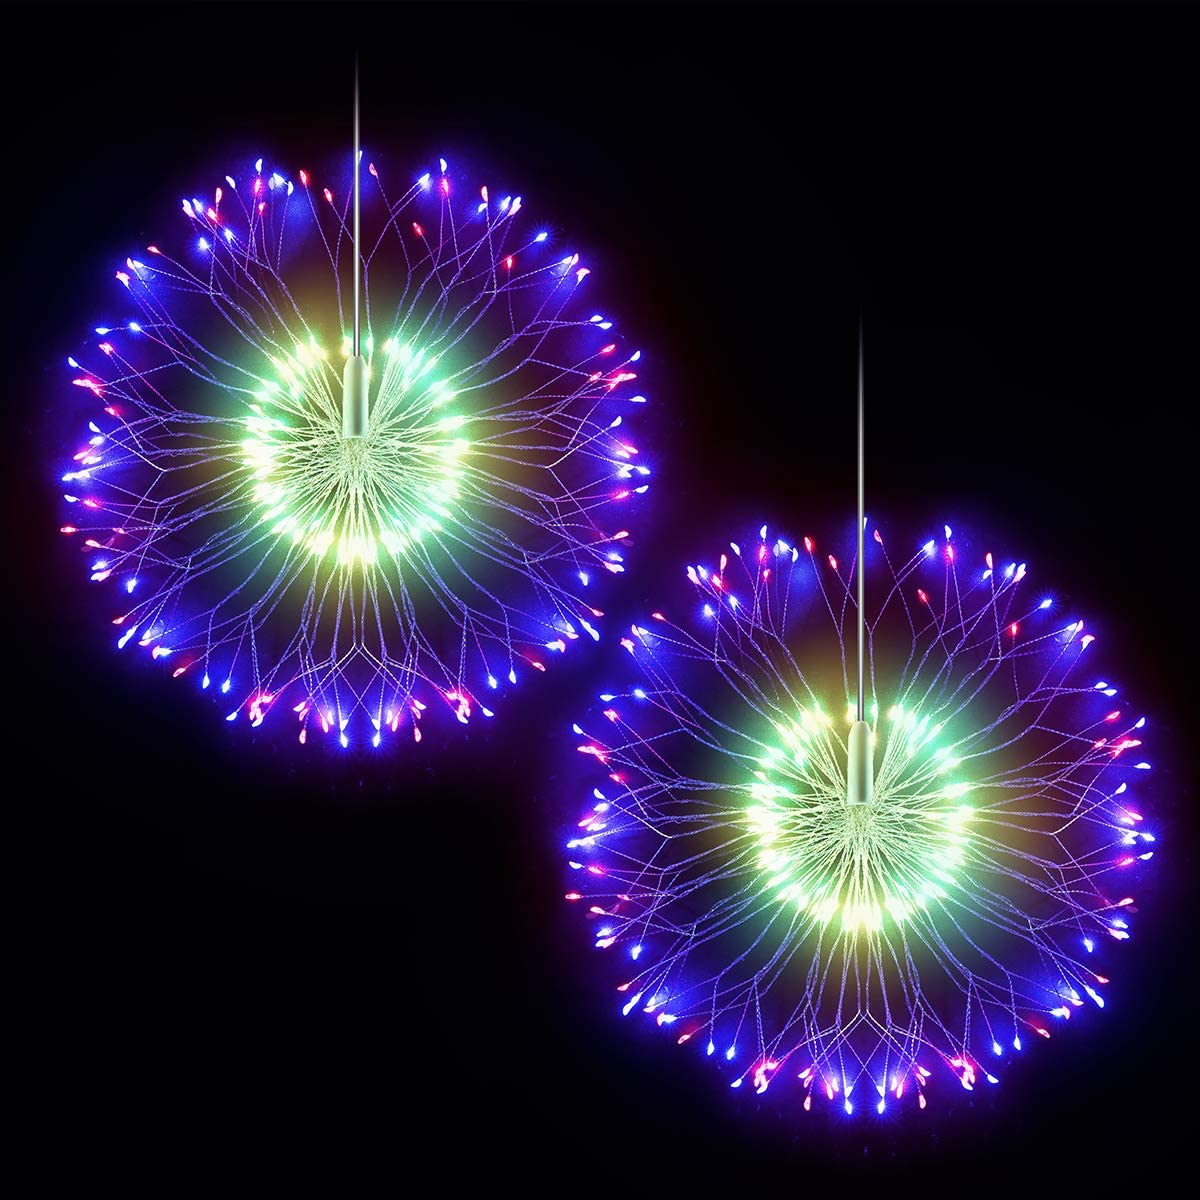 DenicMic Firework Lights Starburst Lights 200 LED Battery Operated Fairy Lights with Remote, 8 Modes Copper Wire Lights, Decorative Hanging Lights for Patio Party Indoor Christmas Decoration 2 Pack